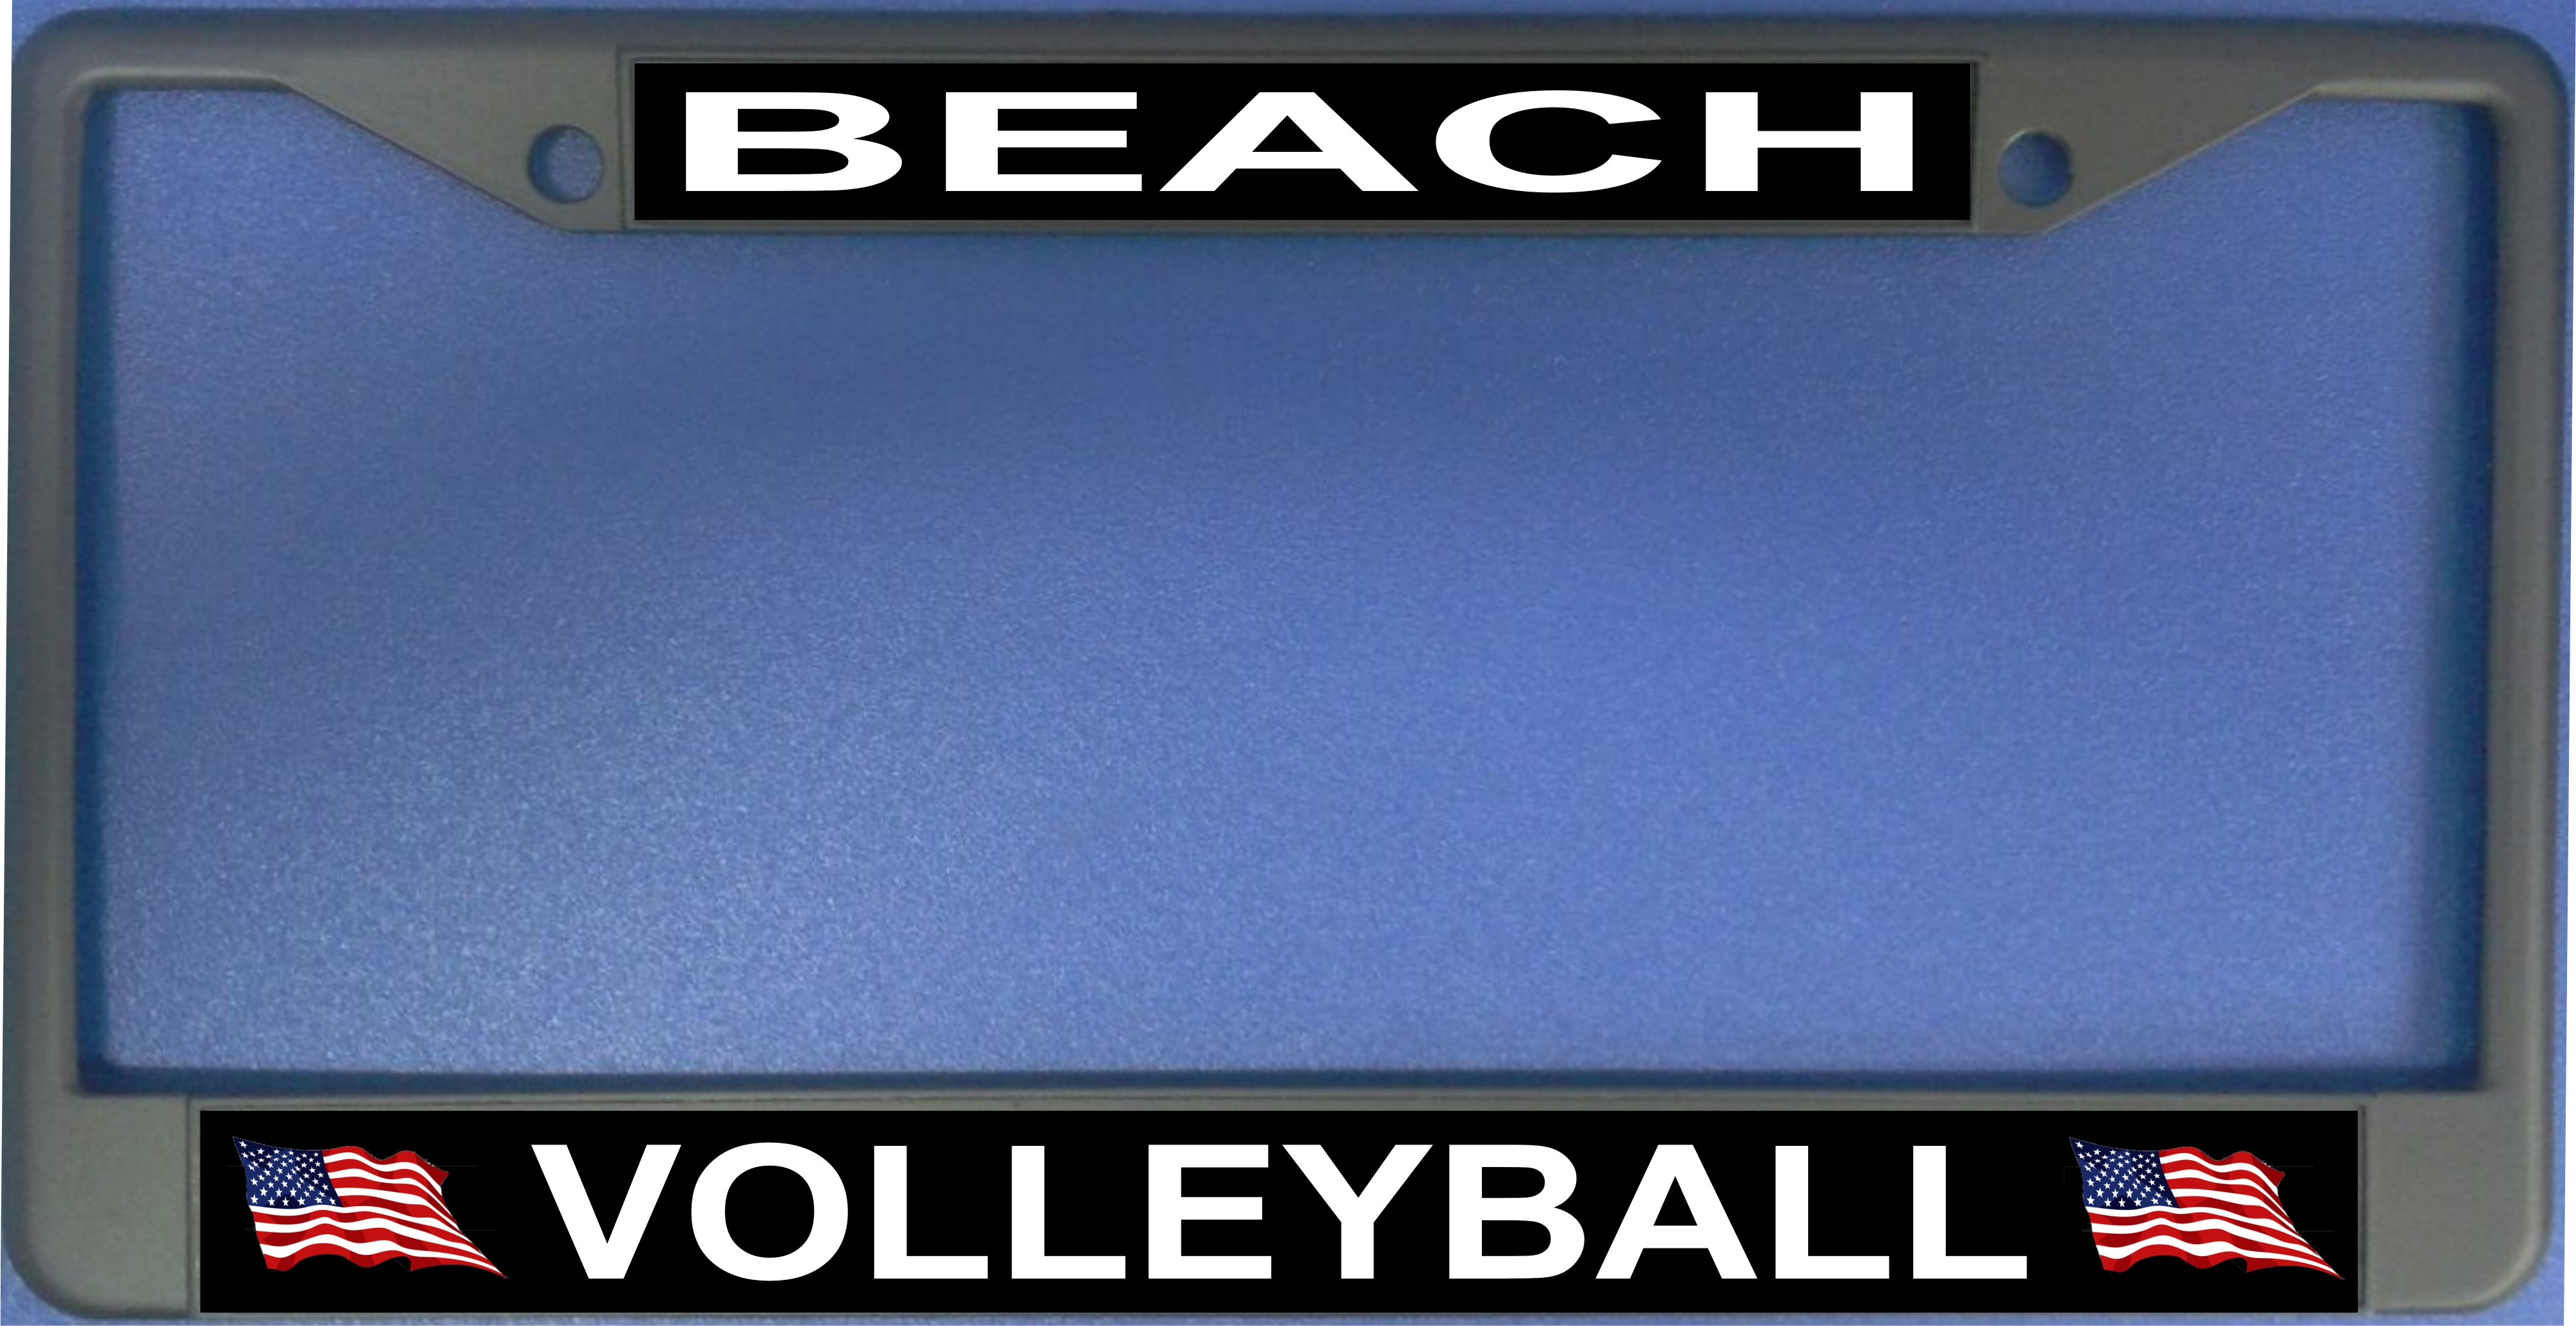 Beach VOLLEYBALL Photo License Plate Frame  Free Screw Caps with this Frame